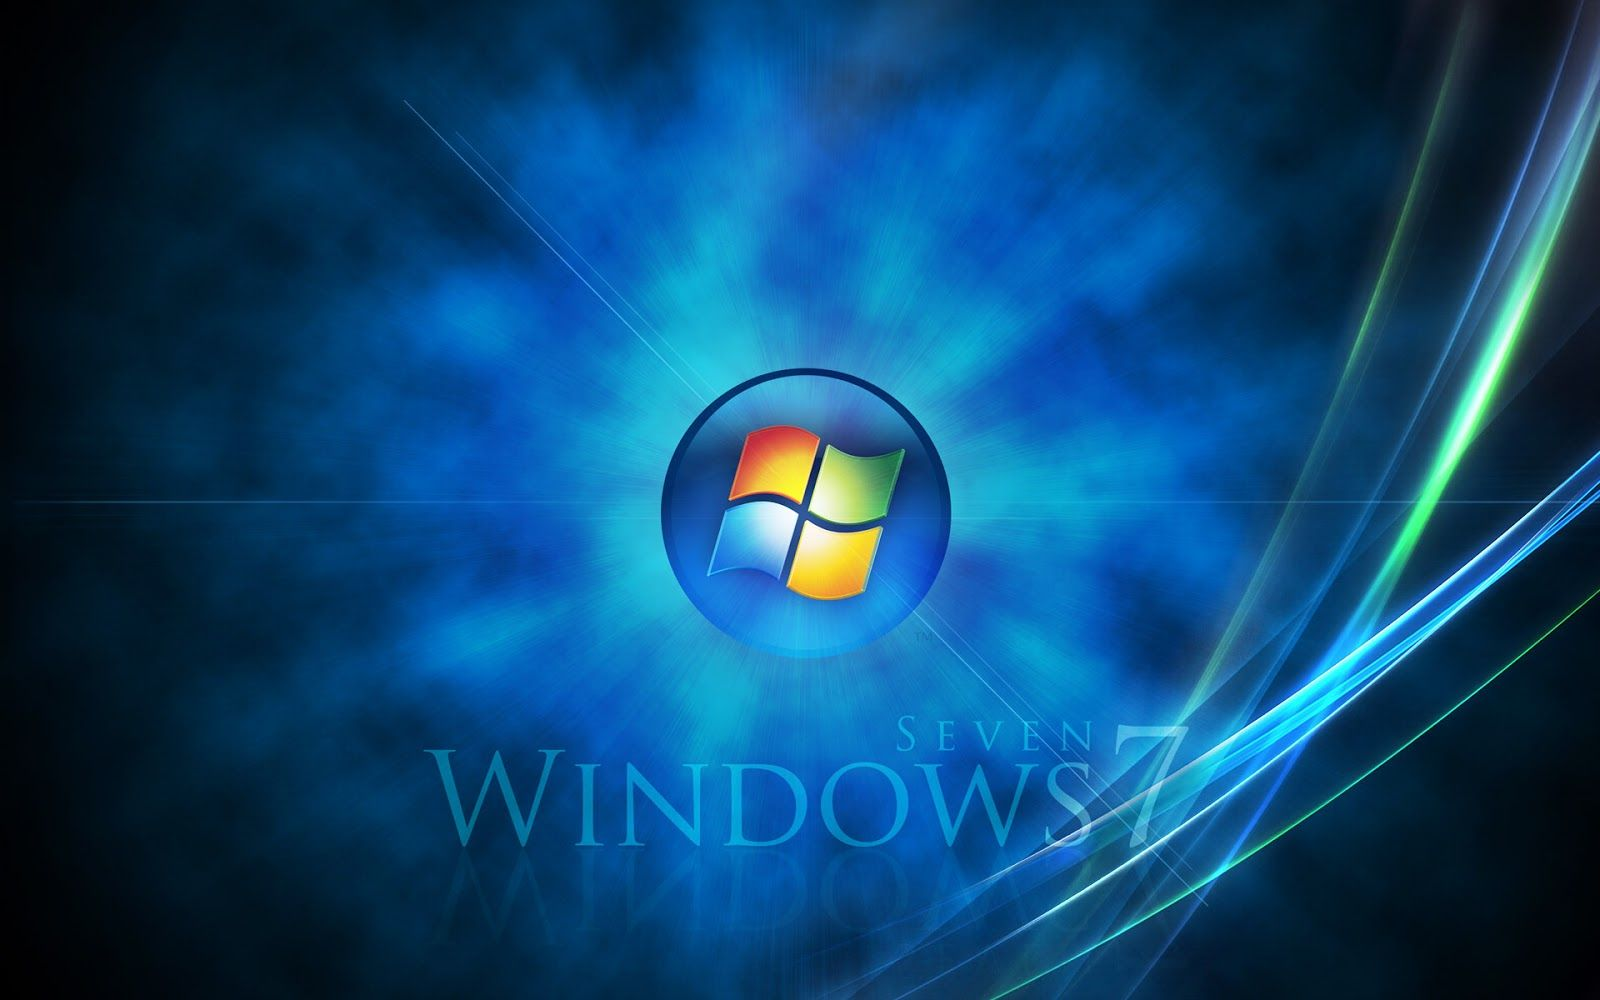 Windows Wallpaper By Antony On Deviantart 1600 1000 Windows 7 Professional Wallpapers Hd 46 Wallpape Computer Wallpaper 3d Desktop Wallpaper Windows Wallpaper